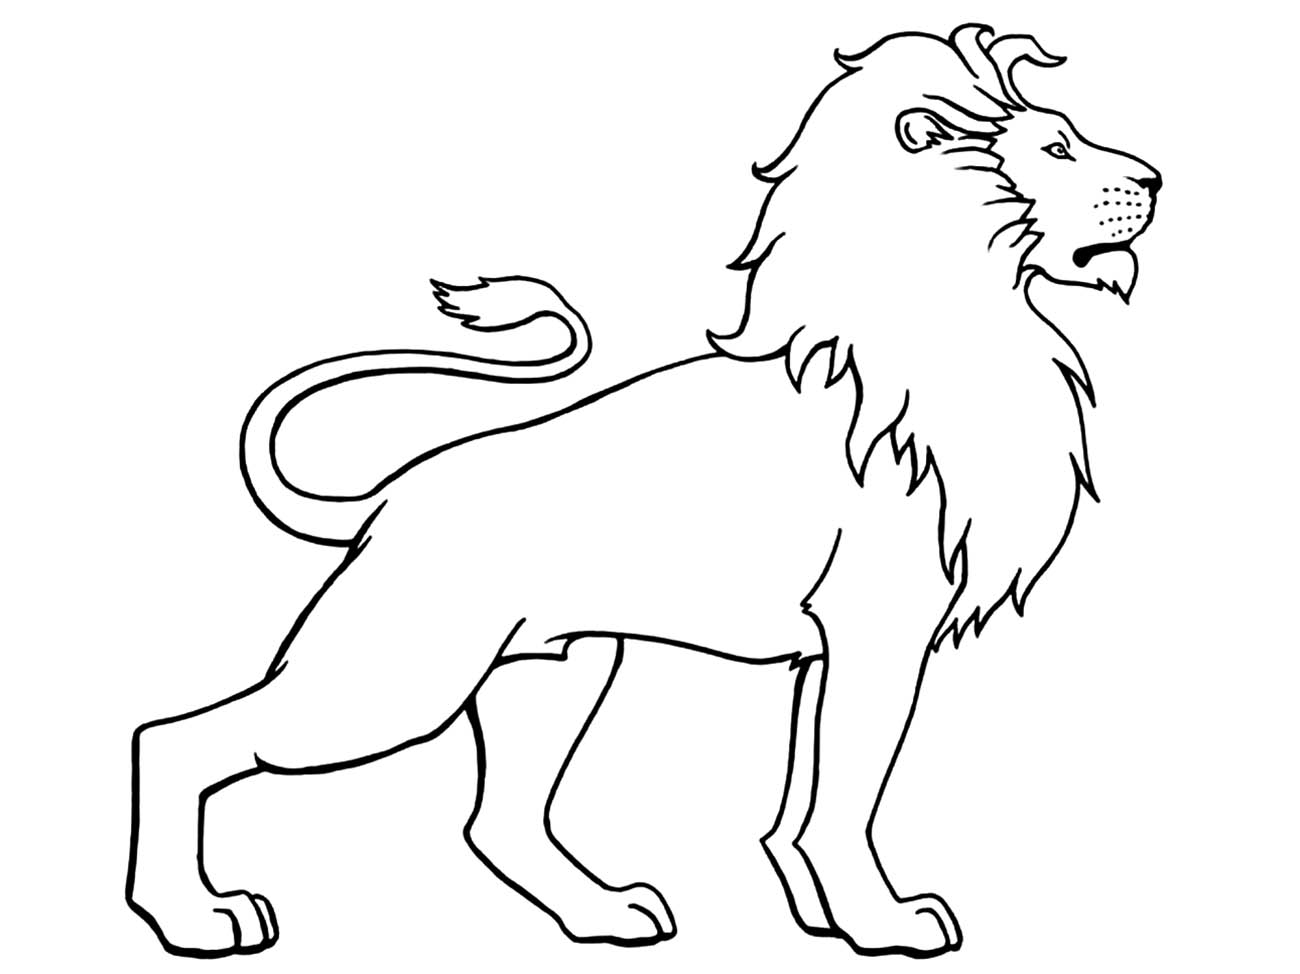 colouring images of lion lion to print for free lion kids coloring pages lion images colouring of